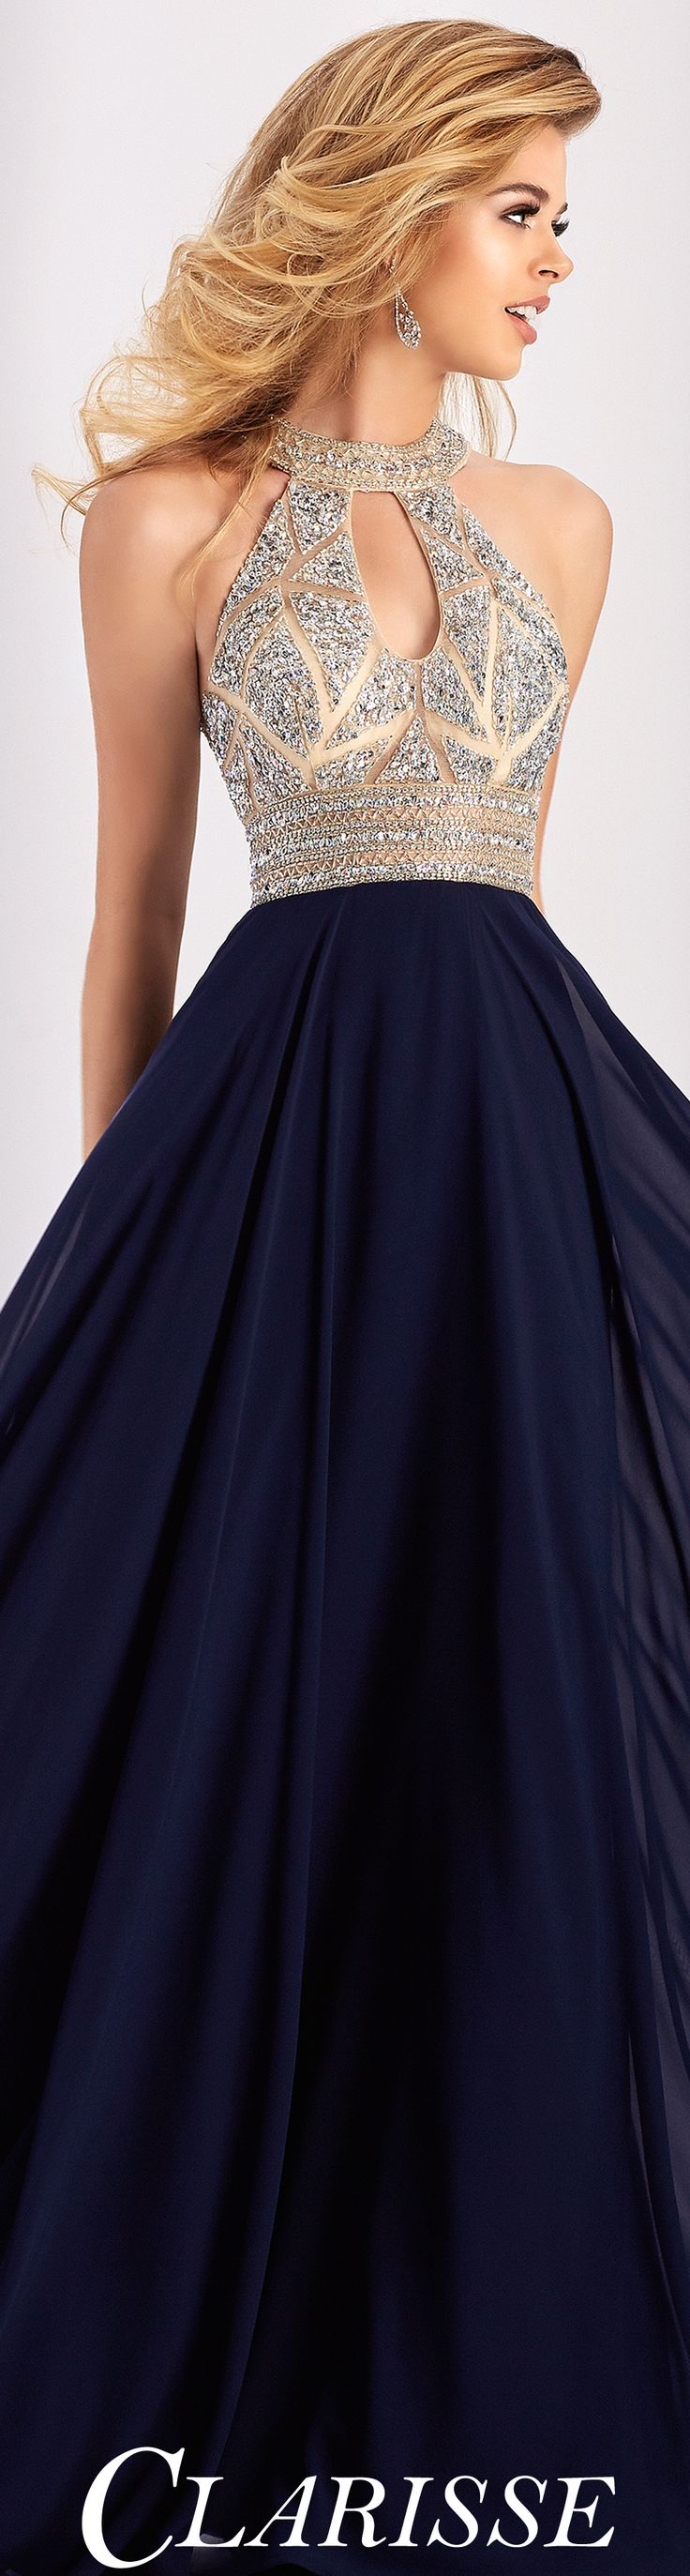 Long dress styles prom dresses